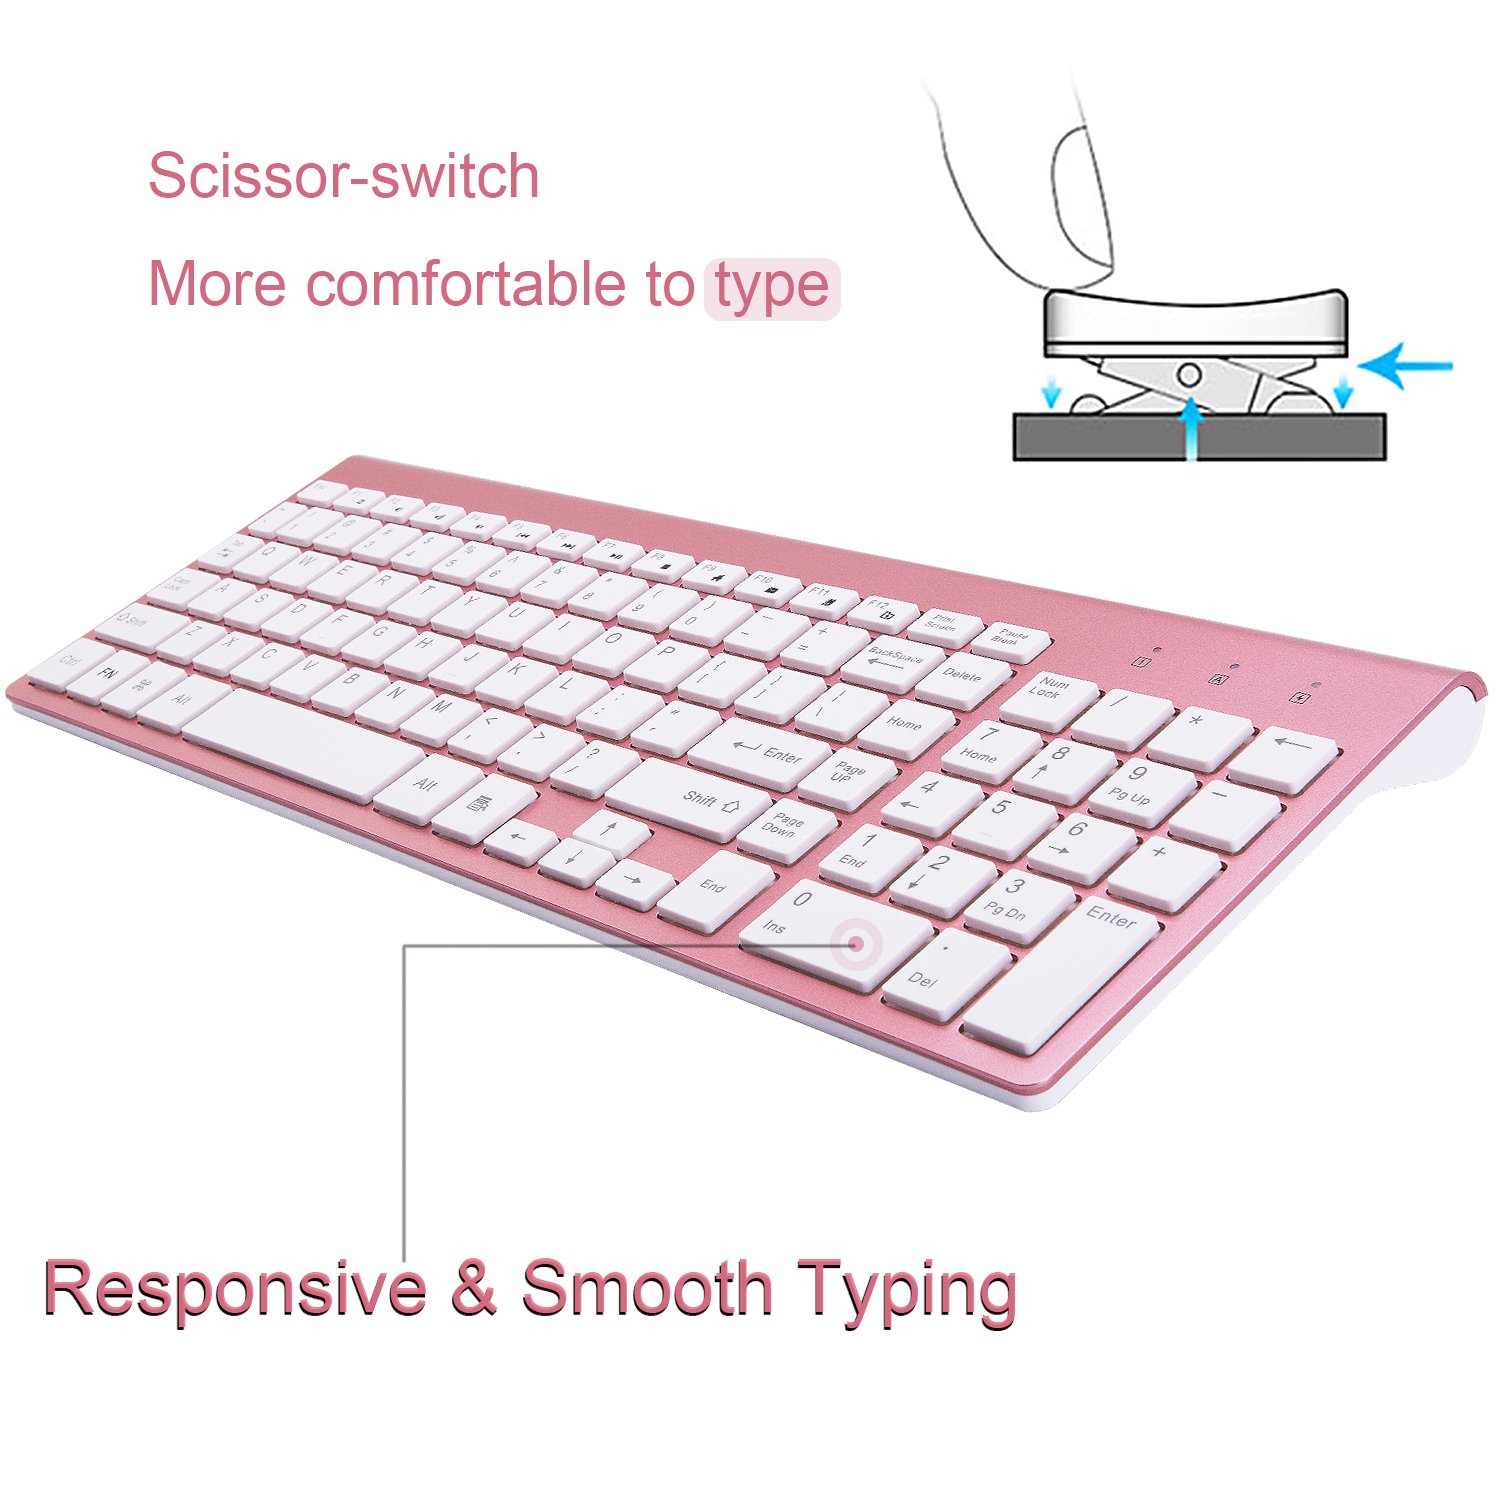 Wireless Keyboard and Mouse Combo,2.4GHz Ultra Slim Full Size Whispe-Quiet Compact for Laptop Notebook PC Computer Windows OS Android Rosy Gold